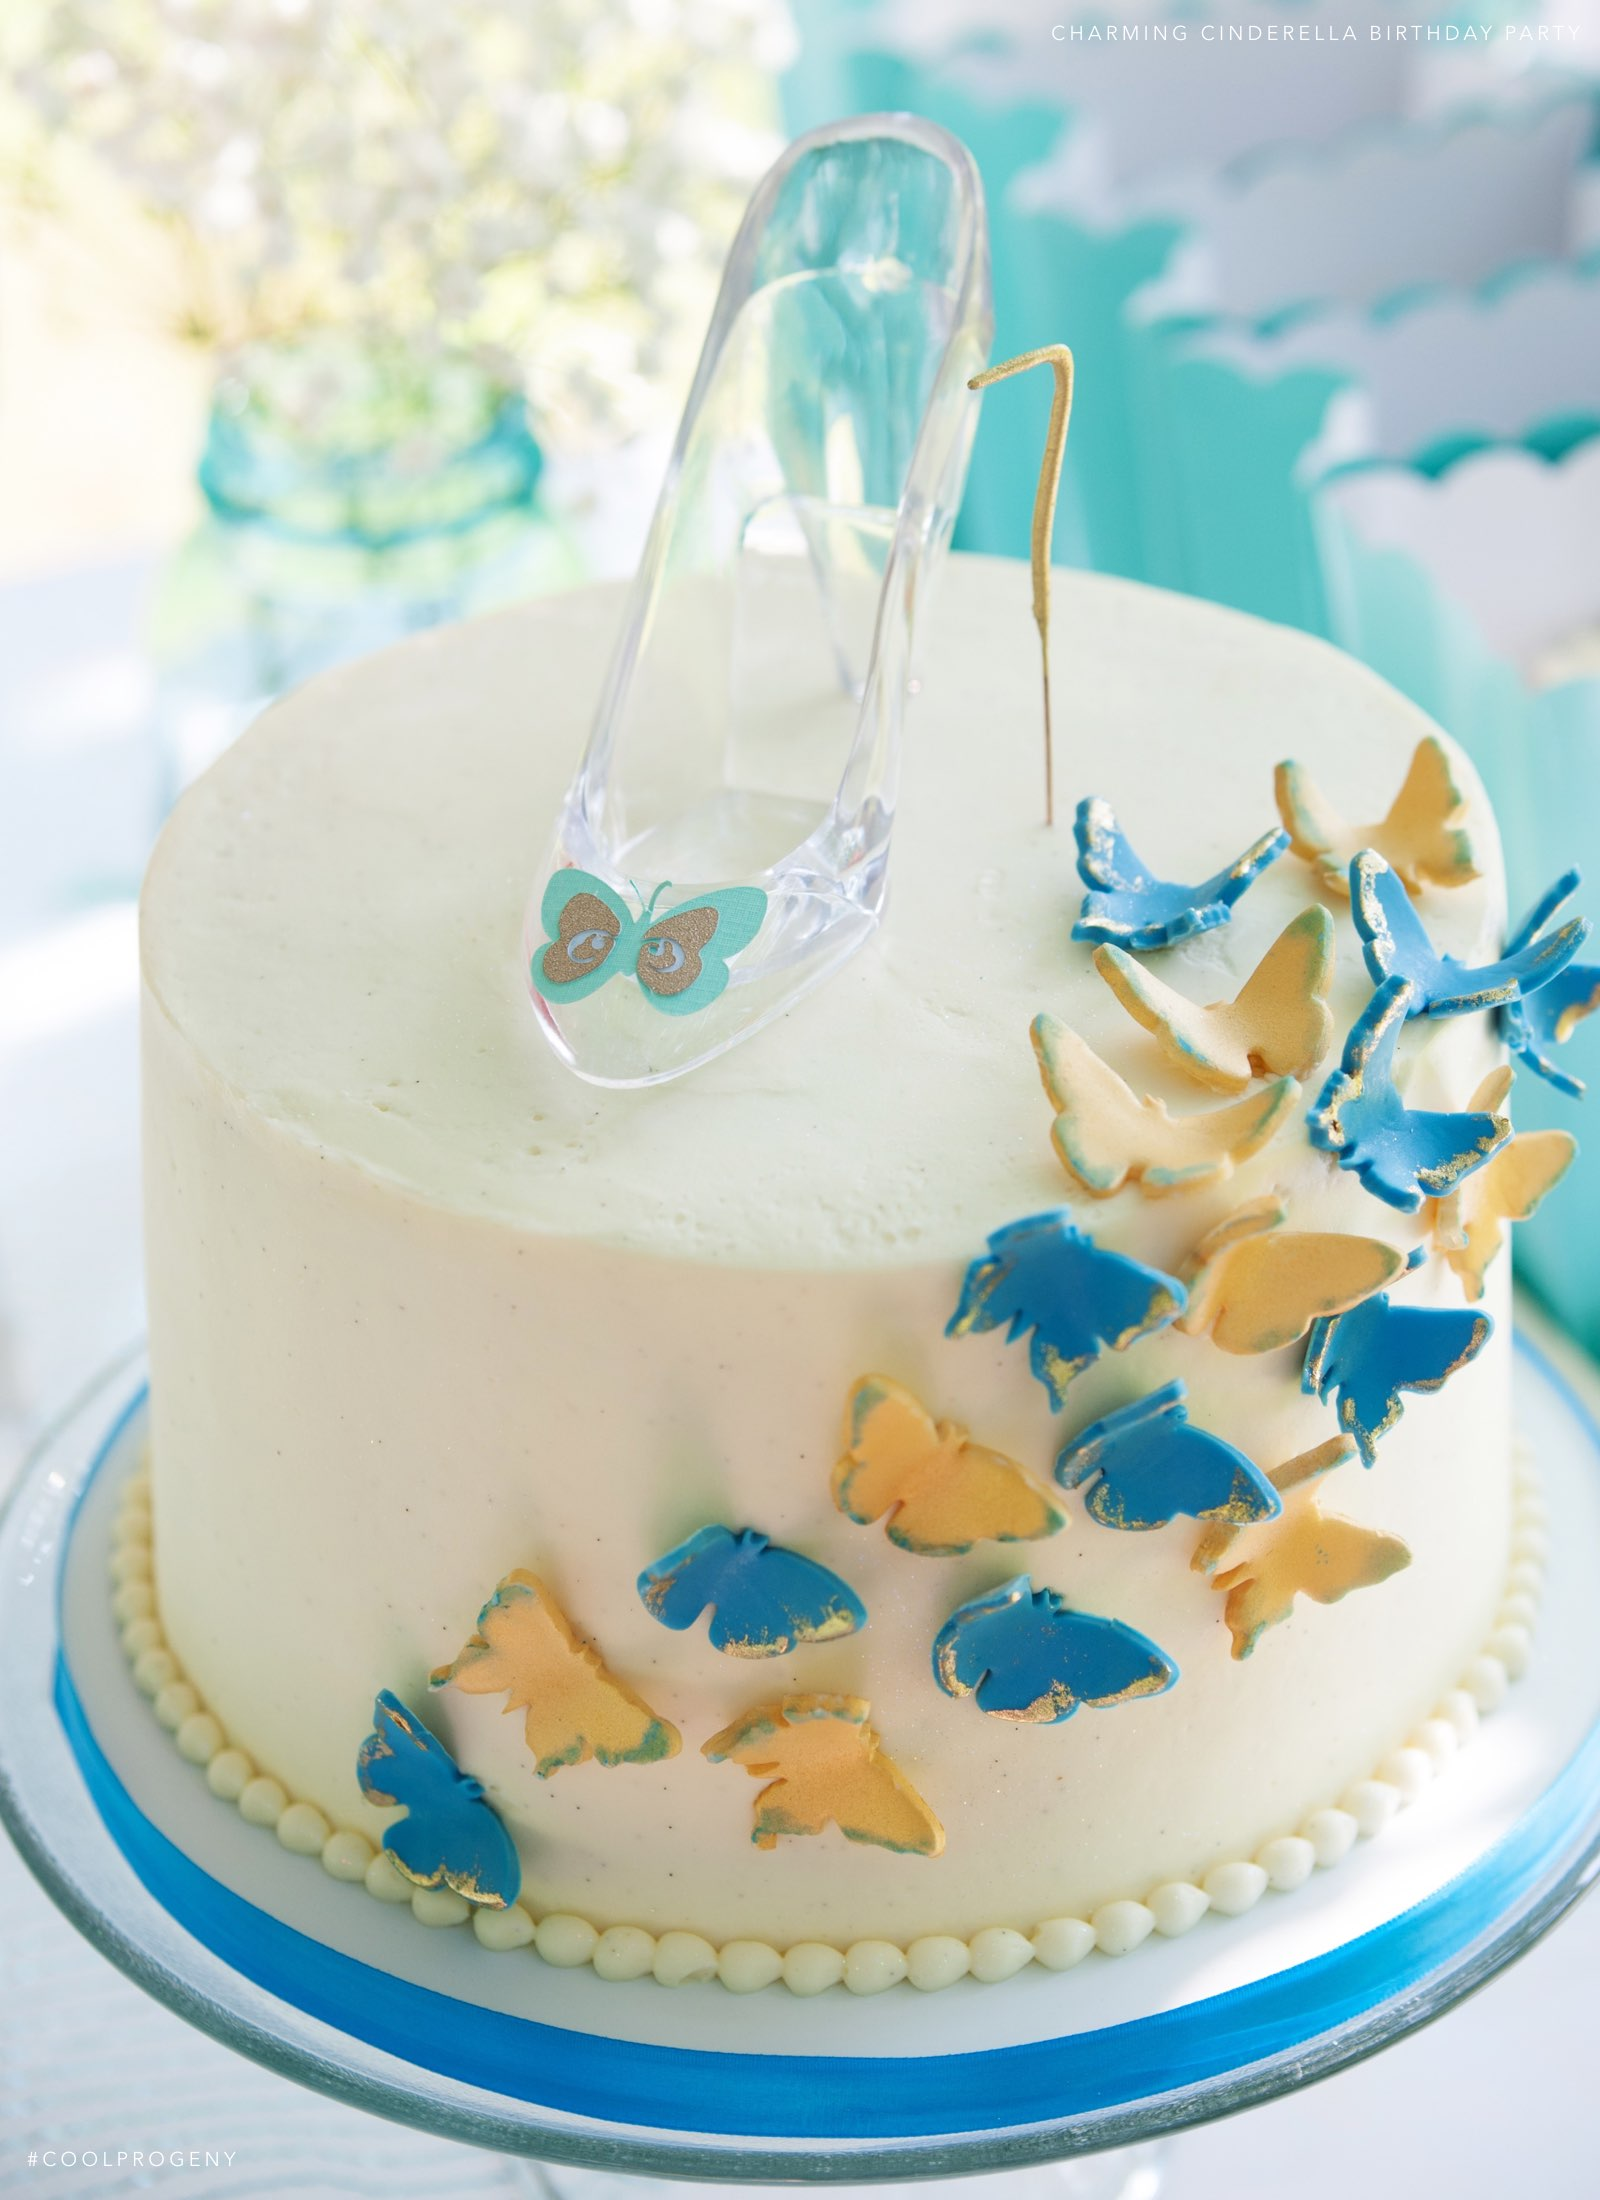 Charming Cinderella Birthday Party - (cool) progeny